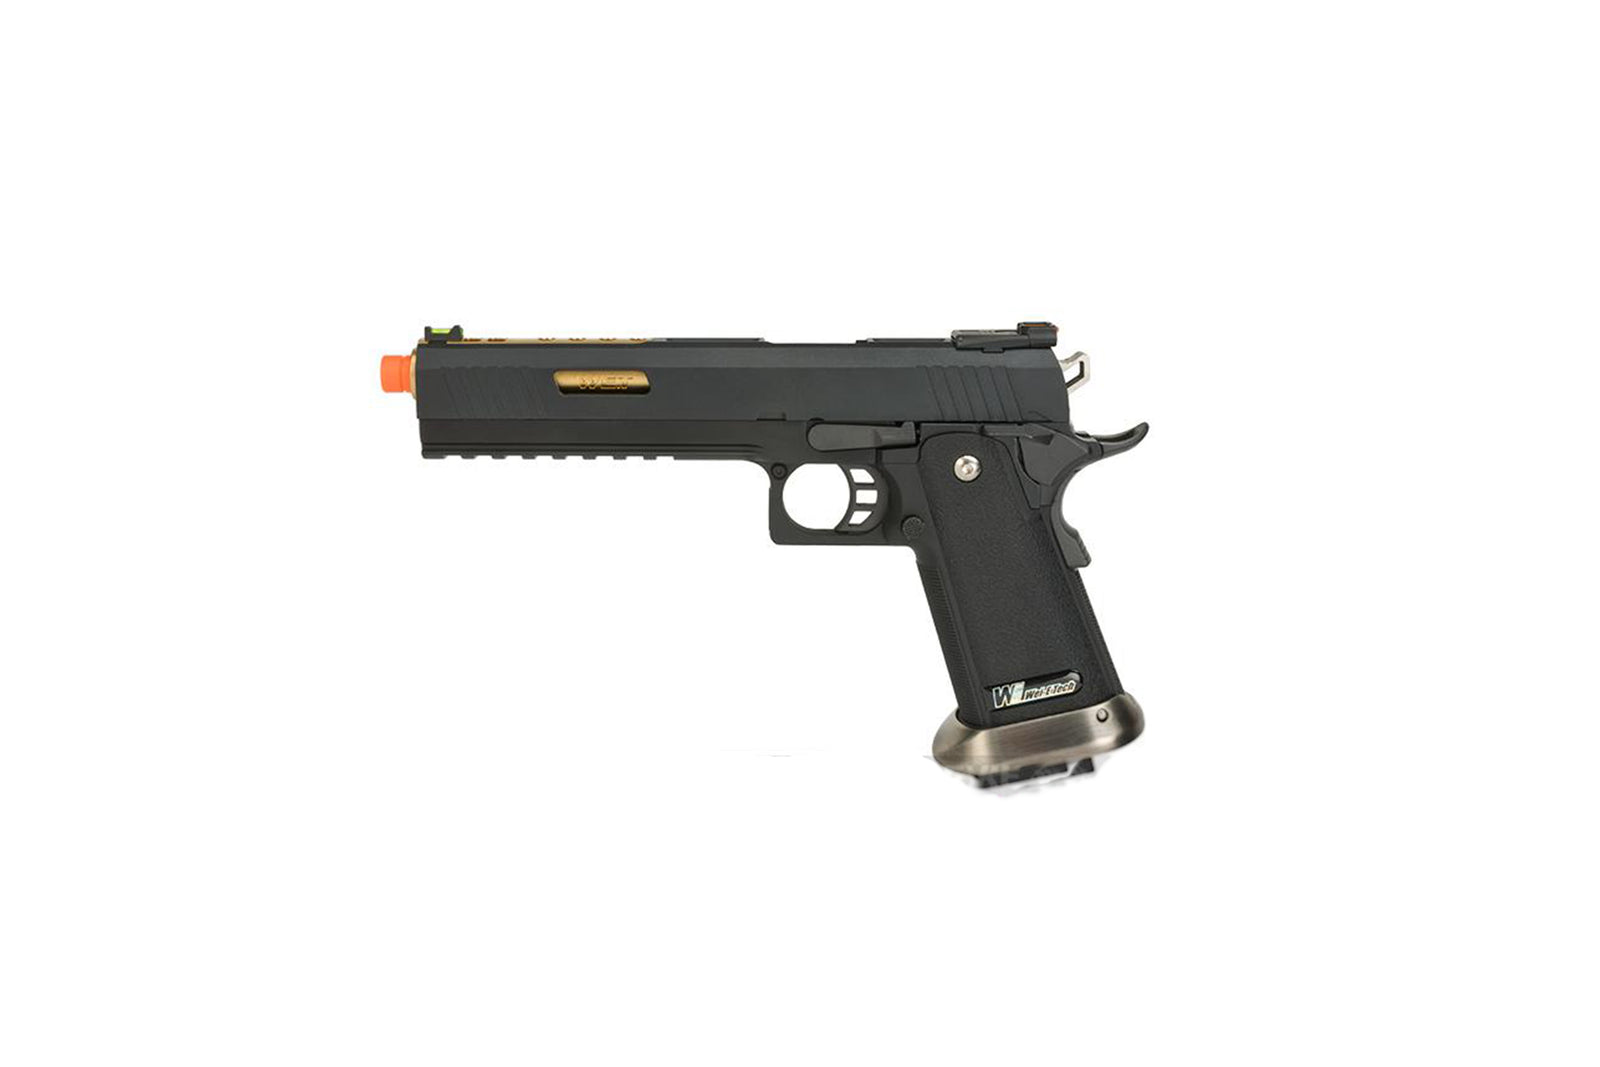 "WE-Tech Hi-Capa 6"" IREX Competition GBB Airsoft Pistol (Color: Black / Gold Barrel)"